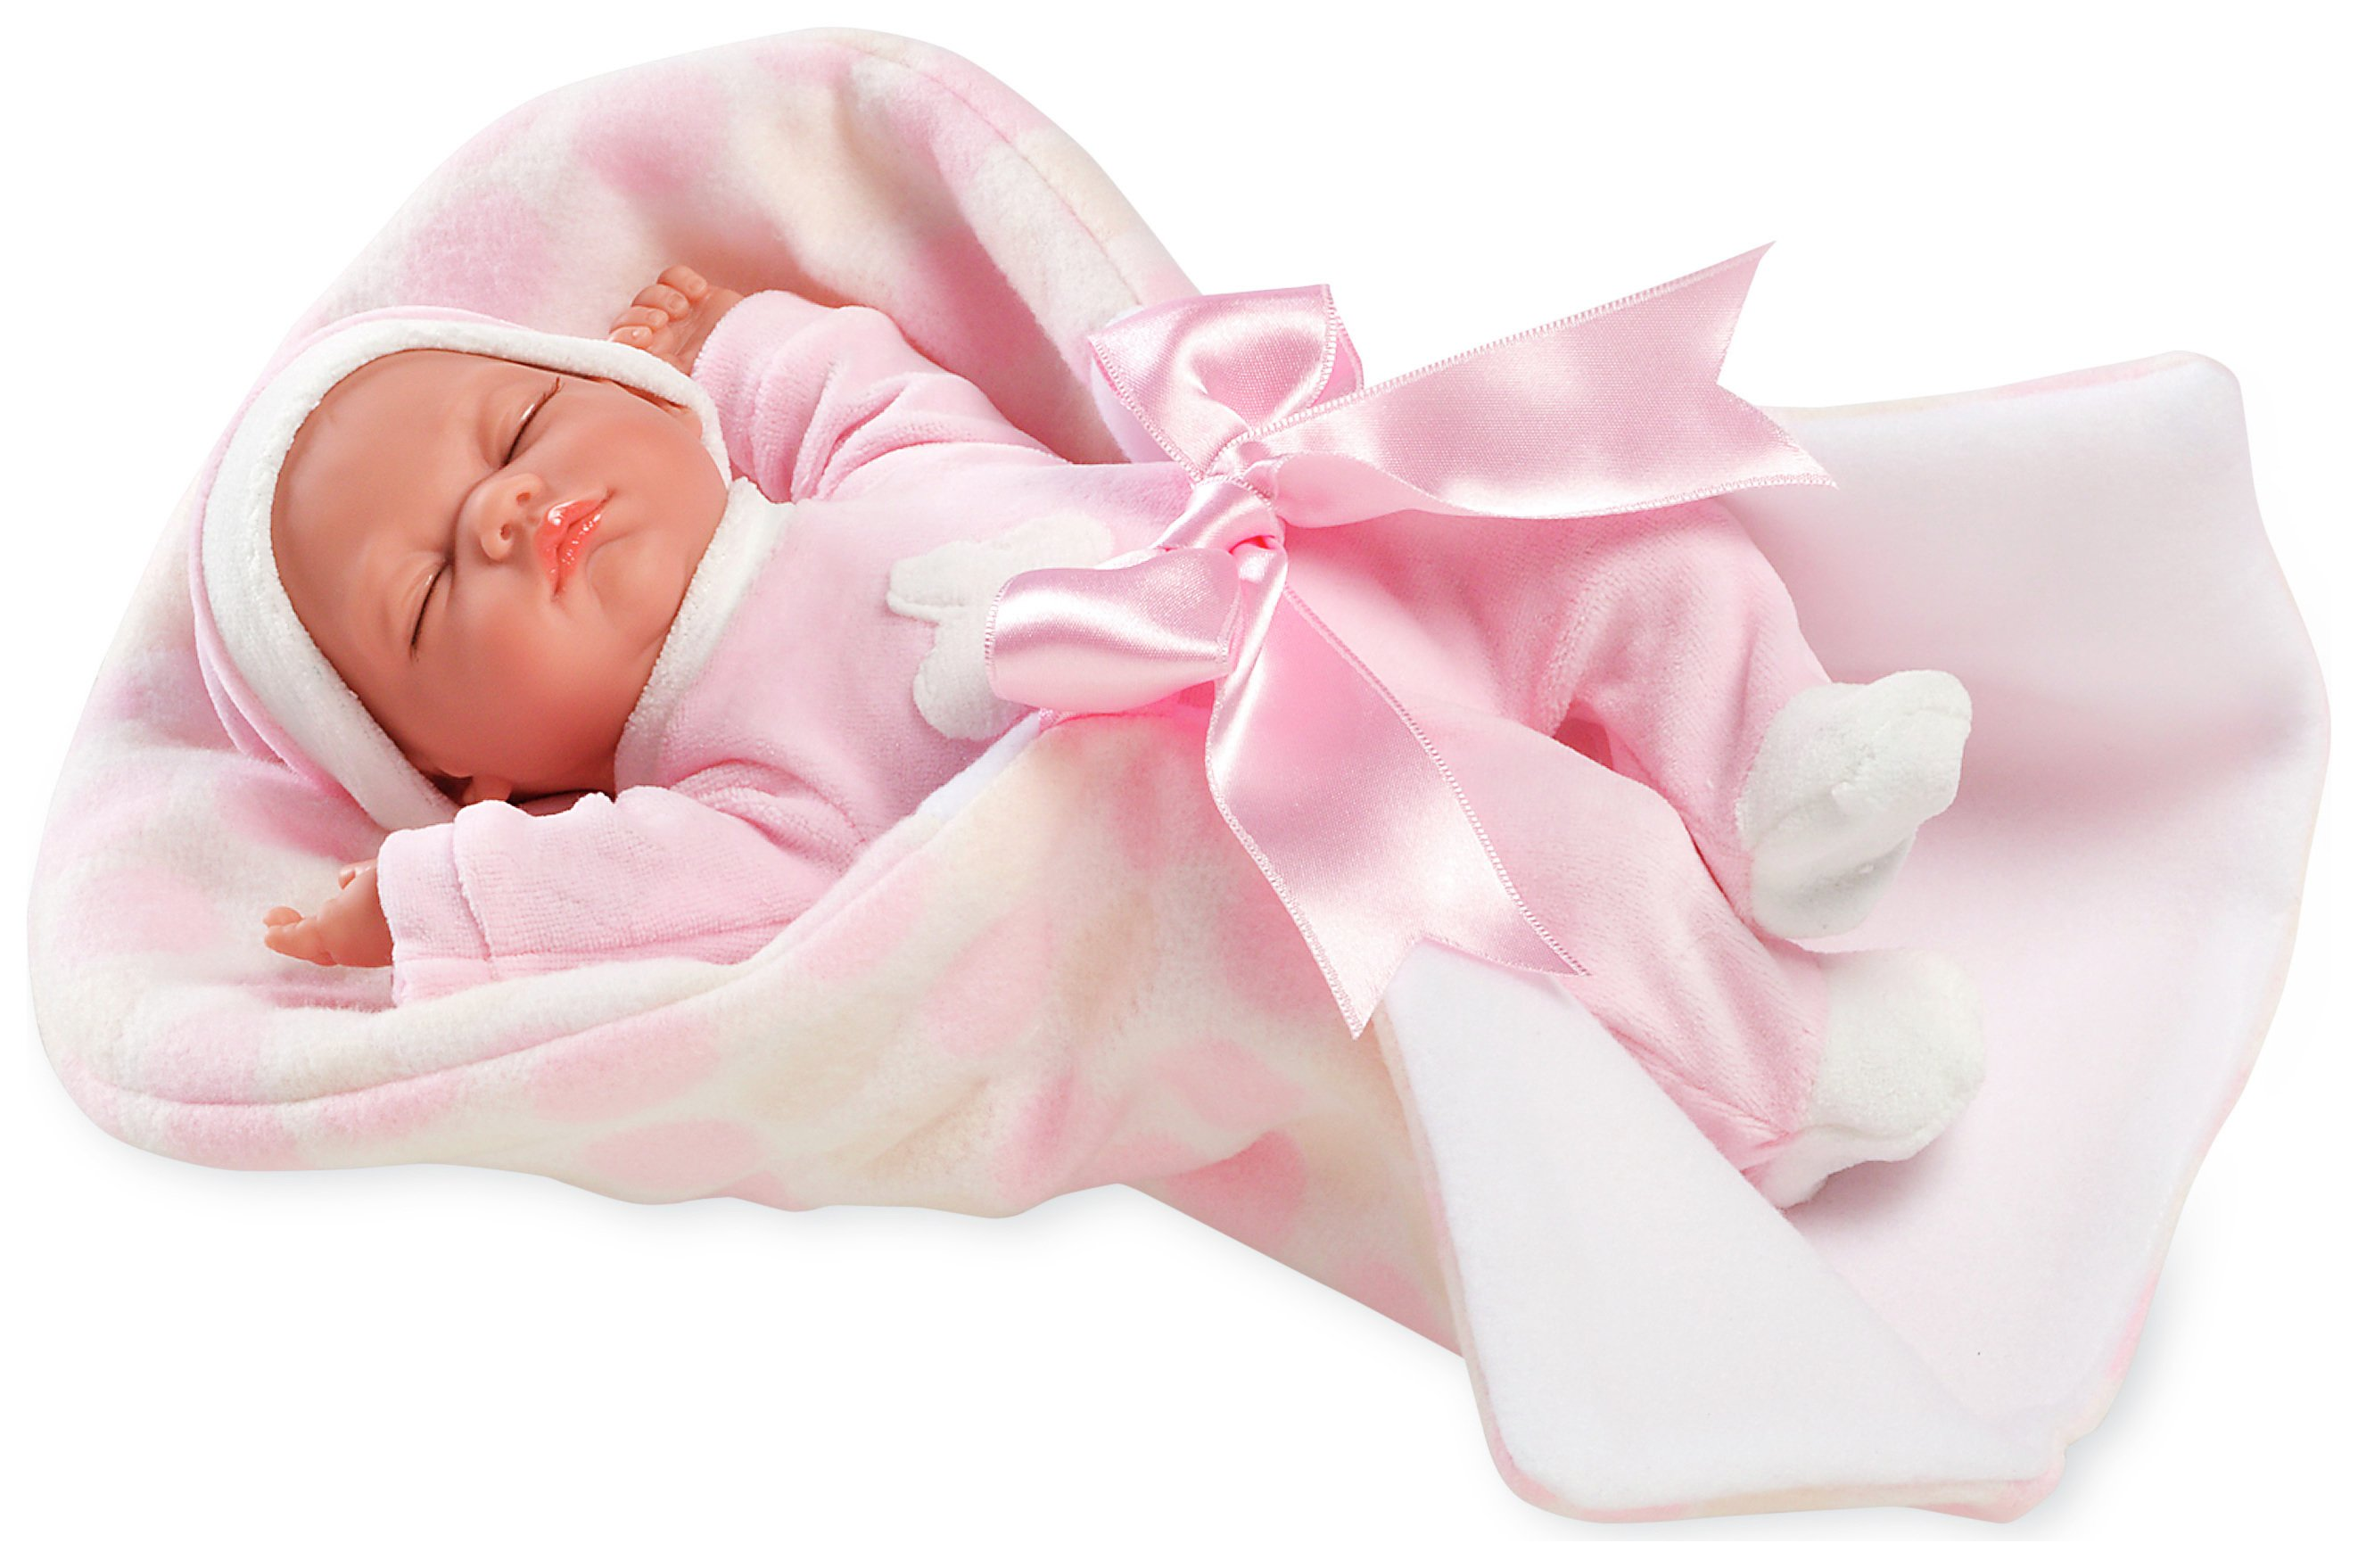 Image of Arias Elegance Crying Noa Baby Doll with Blanket